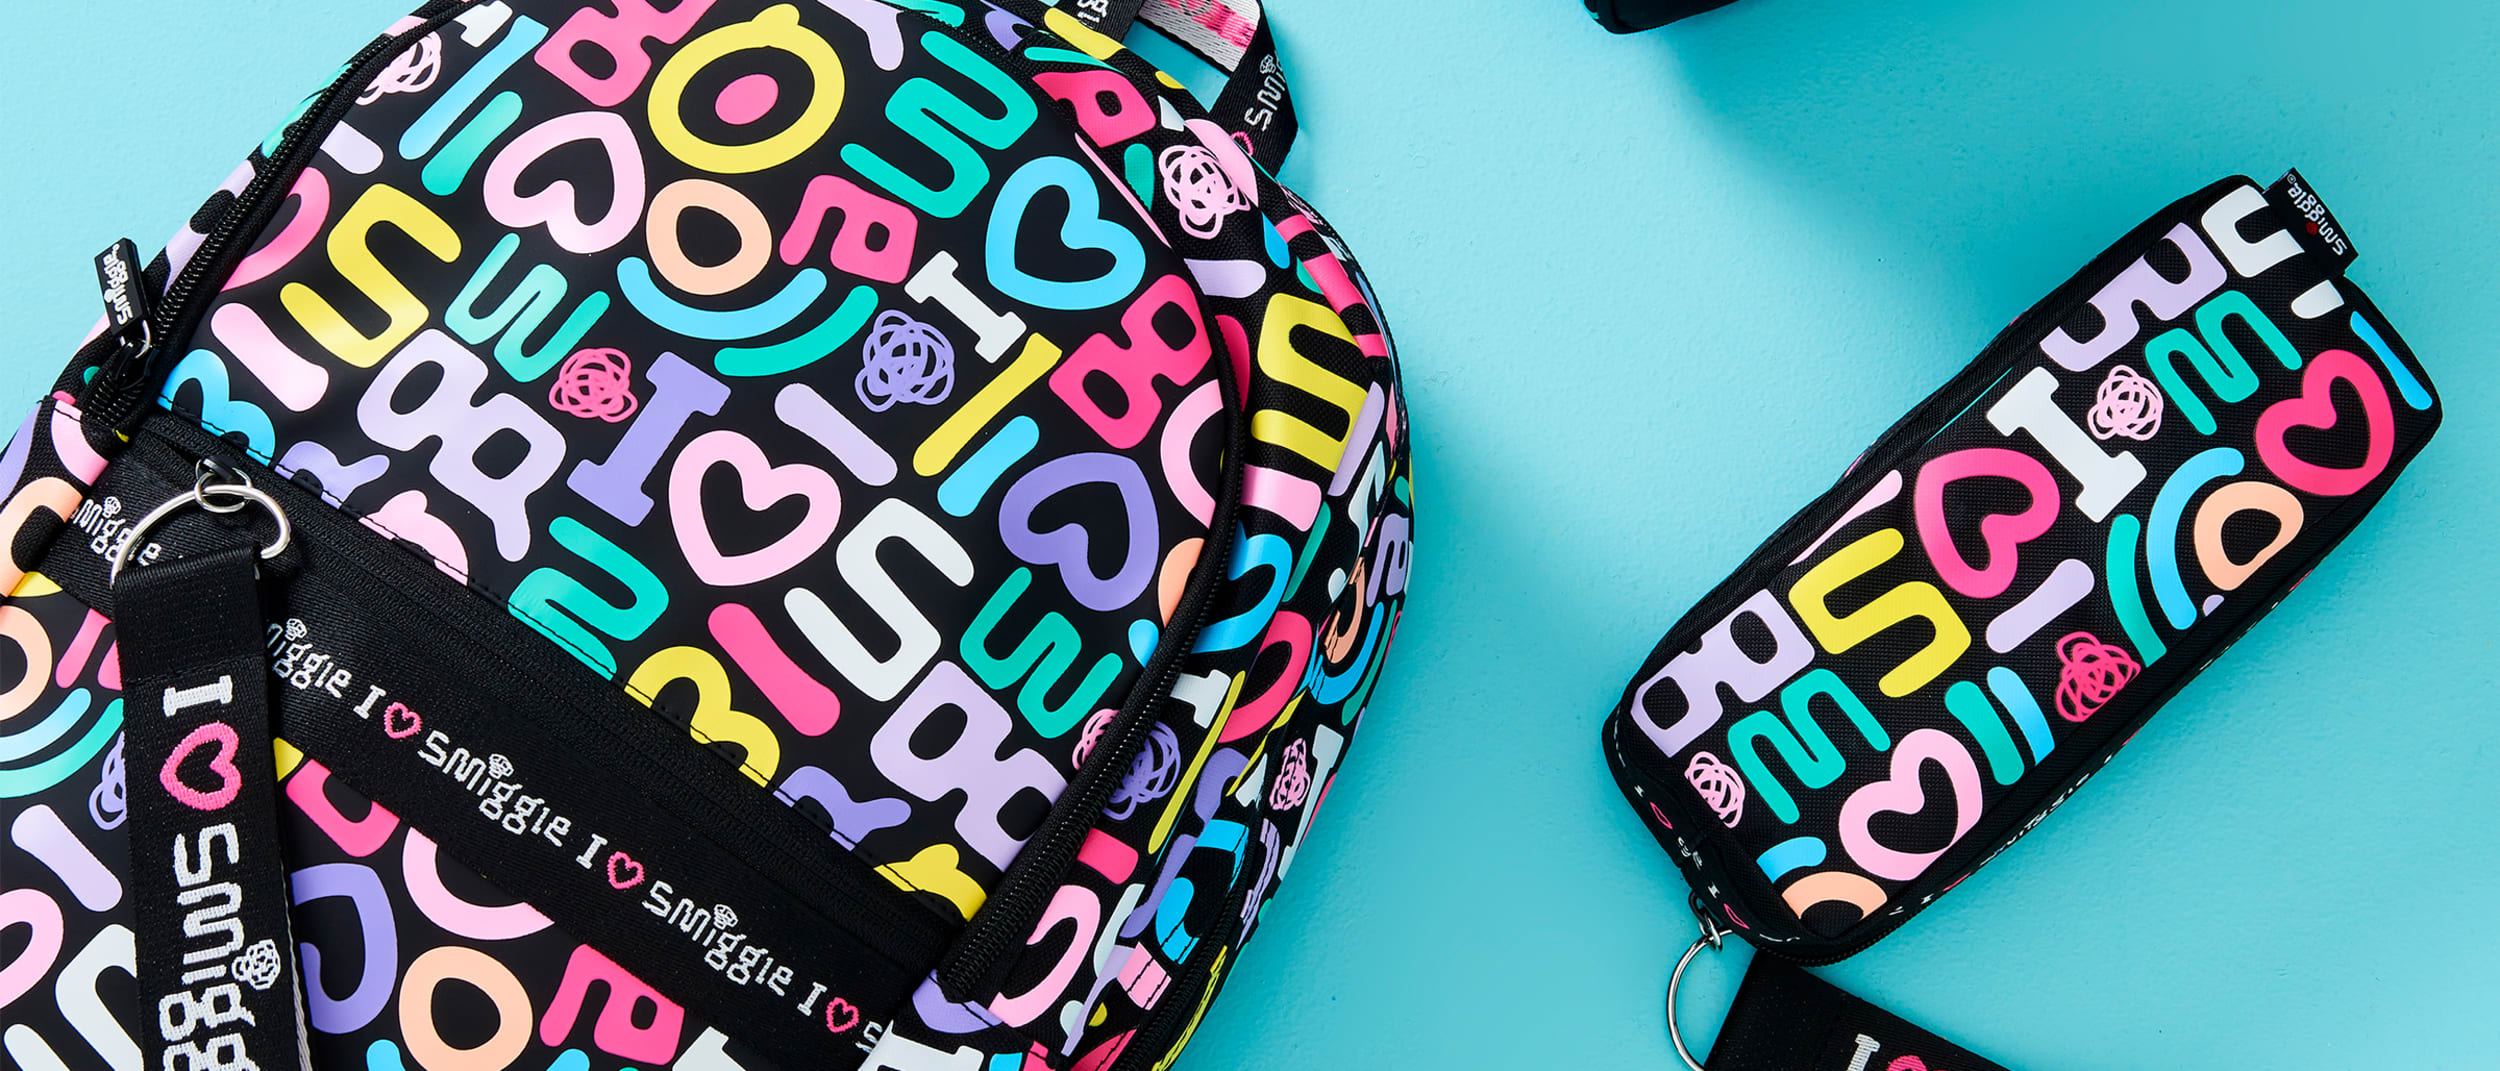 Smiggle's latest core collection